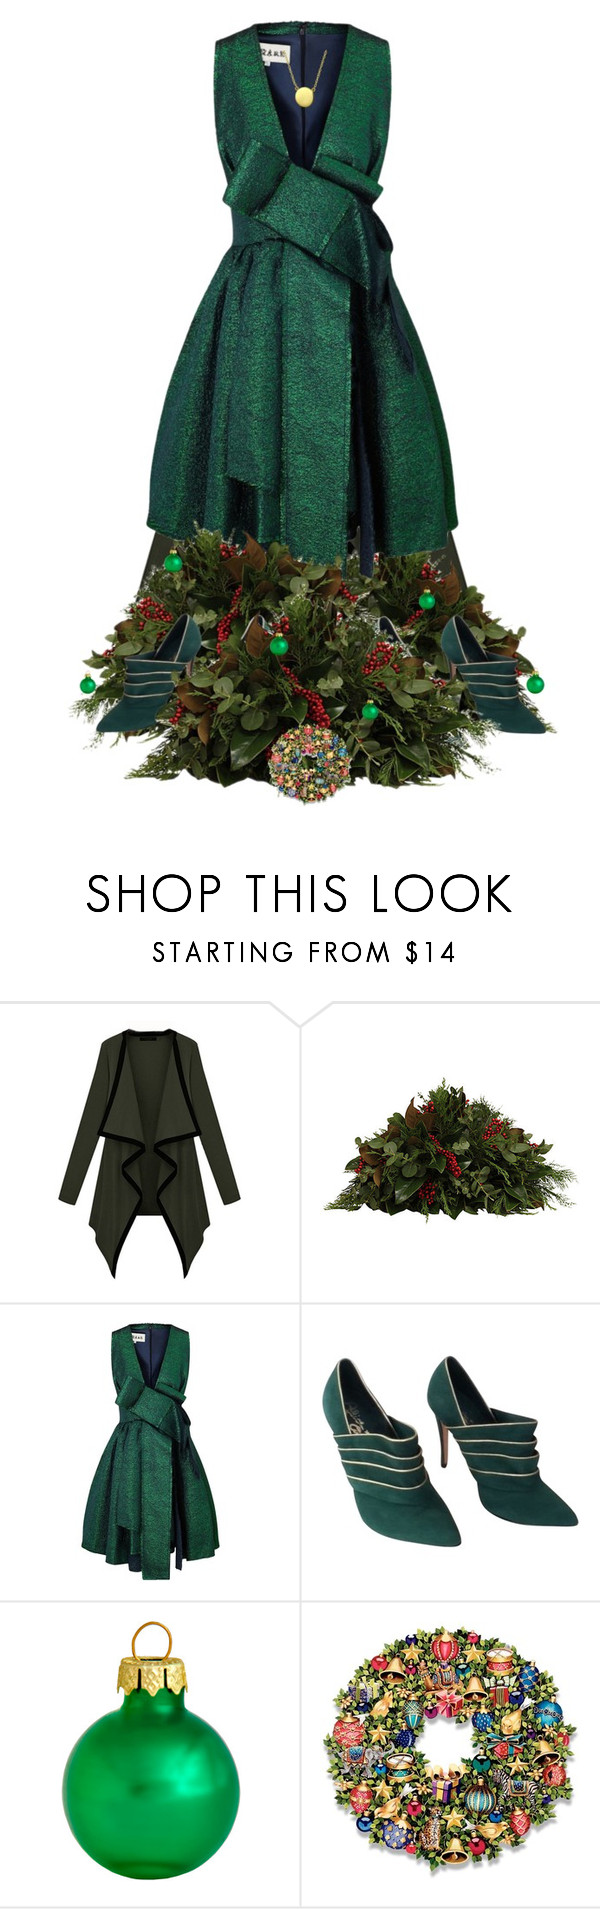 """This christmas I am a tree"" by brooklynbeatz ❤ liked on Polyvore featuring Knud Nielsen Company, A.W.A.K.E., Alice + Olivia, Ball, Bling Jewelry, Christmas, GREEN, holiday and holidaystyle"